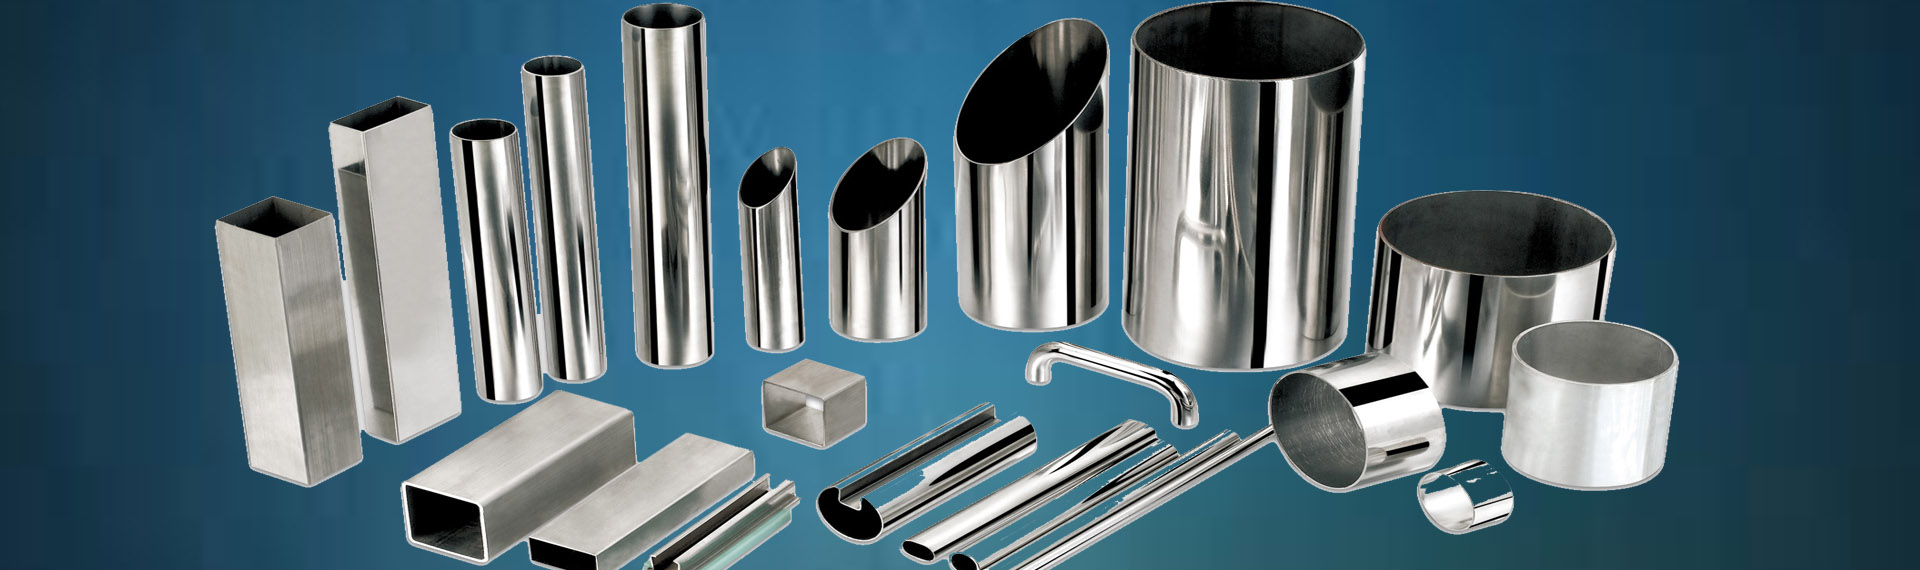 carbon steel pipe suppliers in uae, stainless steel pipes